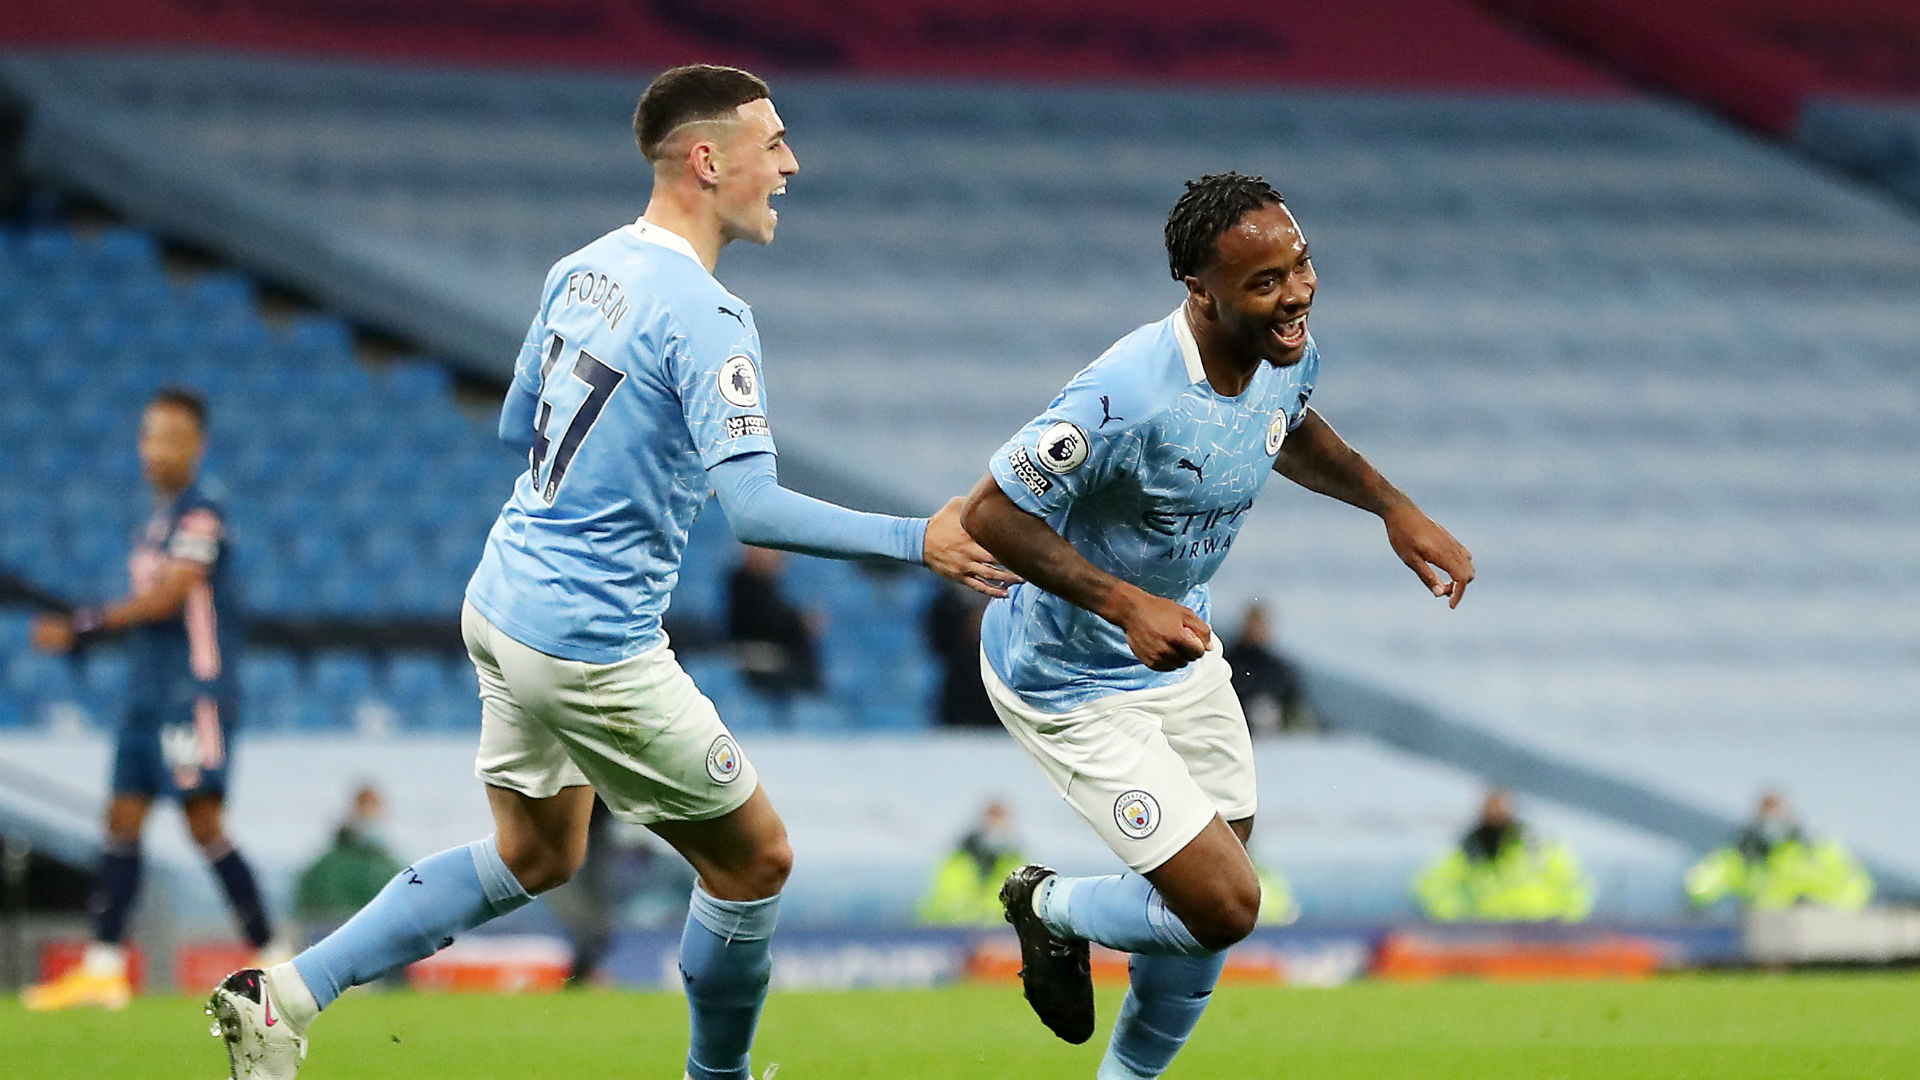 Manchester City 1-0 Arsenal: Sterling lifts City from slump